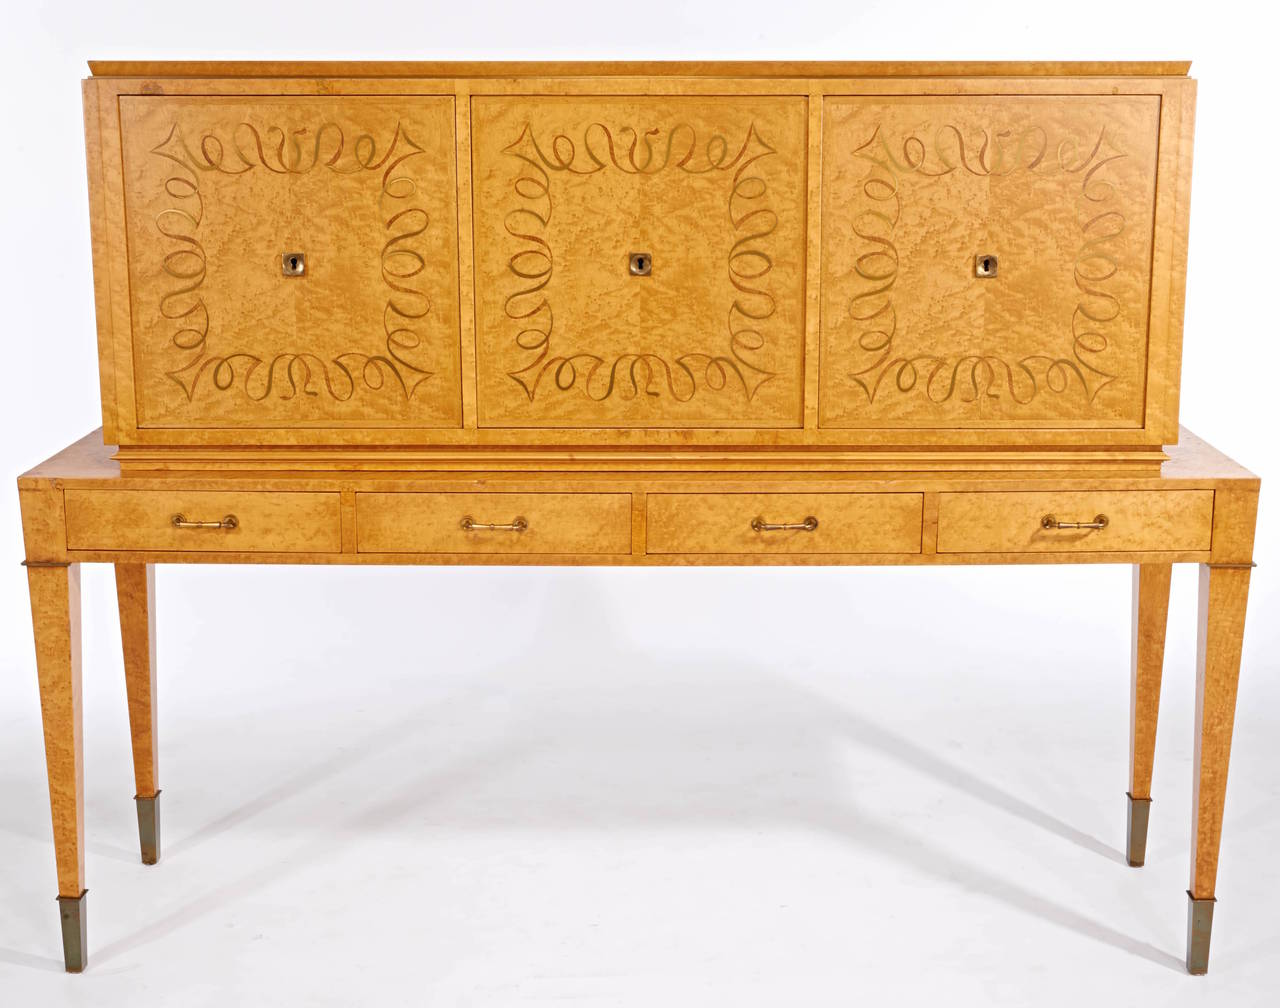 Gorgeous Dominique satinwood cabinet. Provenance: Barry Friedman, NYC.